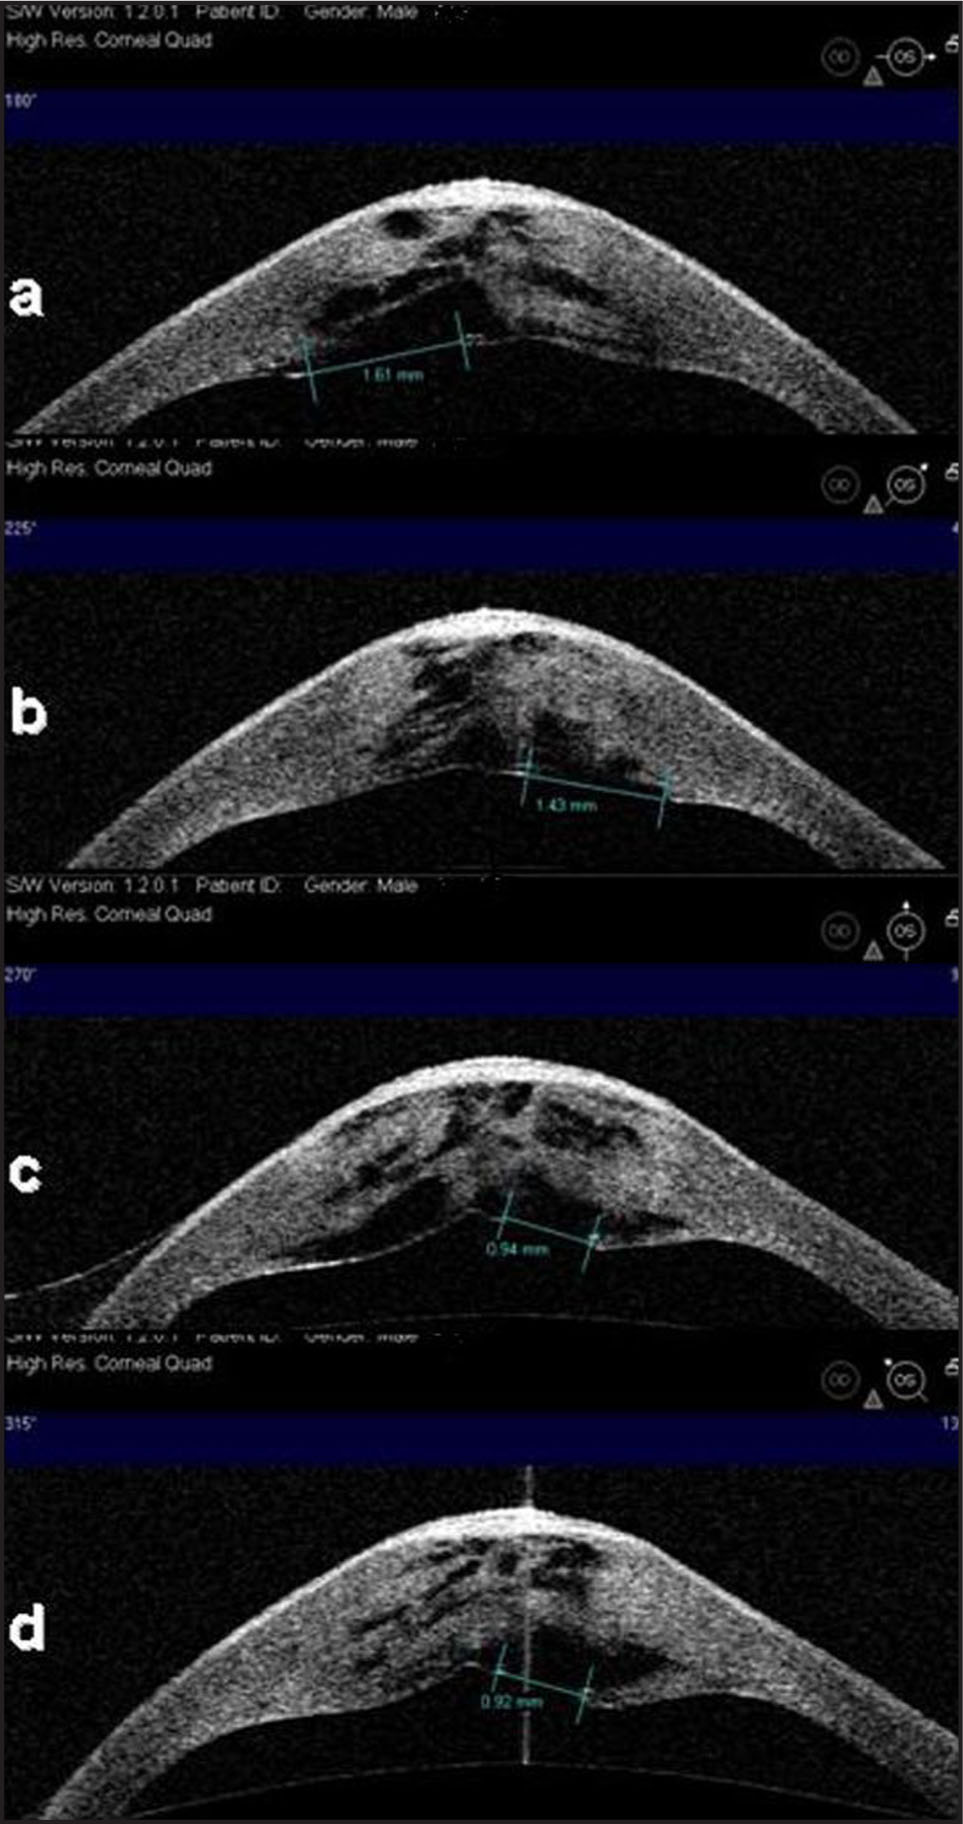 4-Quad High Resolution AS-OCT Image of the Cornea Demonstrating the Polygonal Shape of the Descemet's Break.